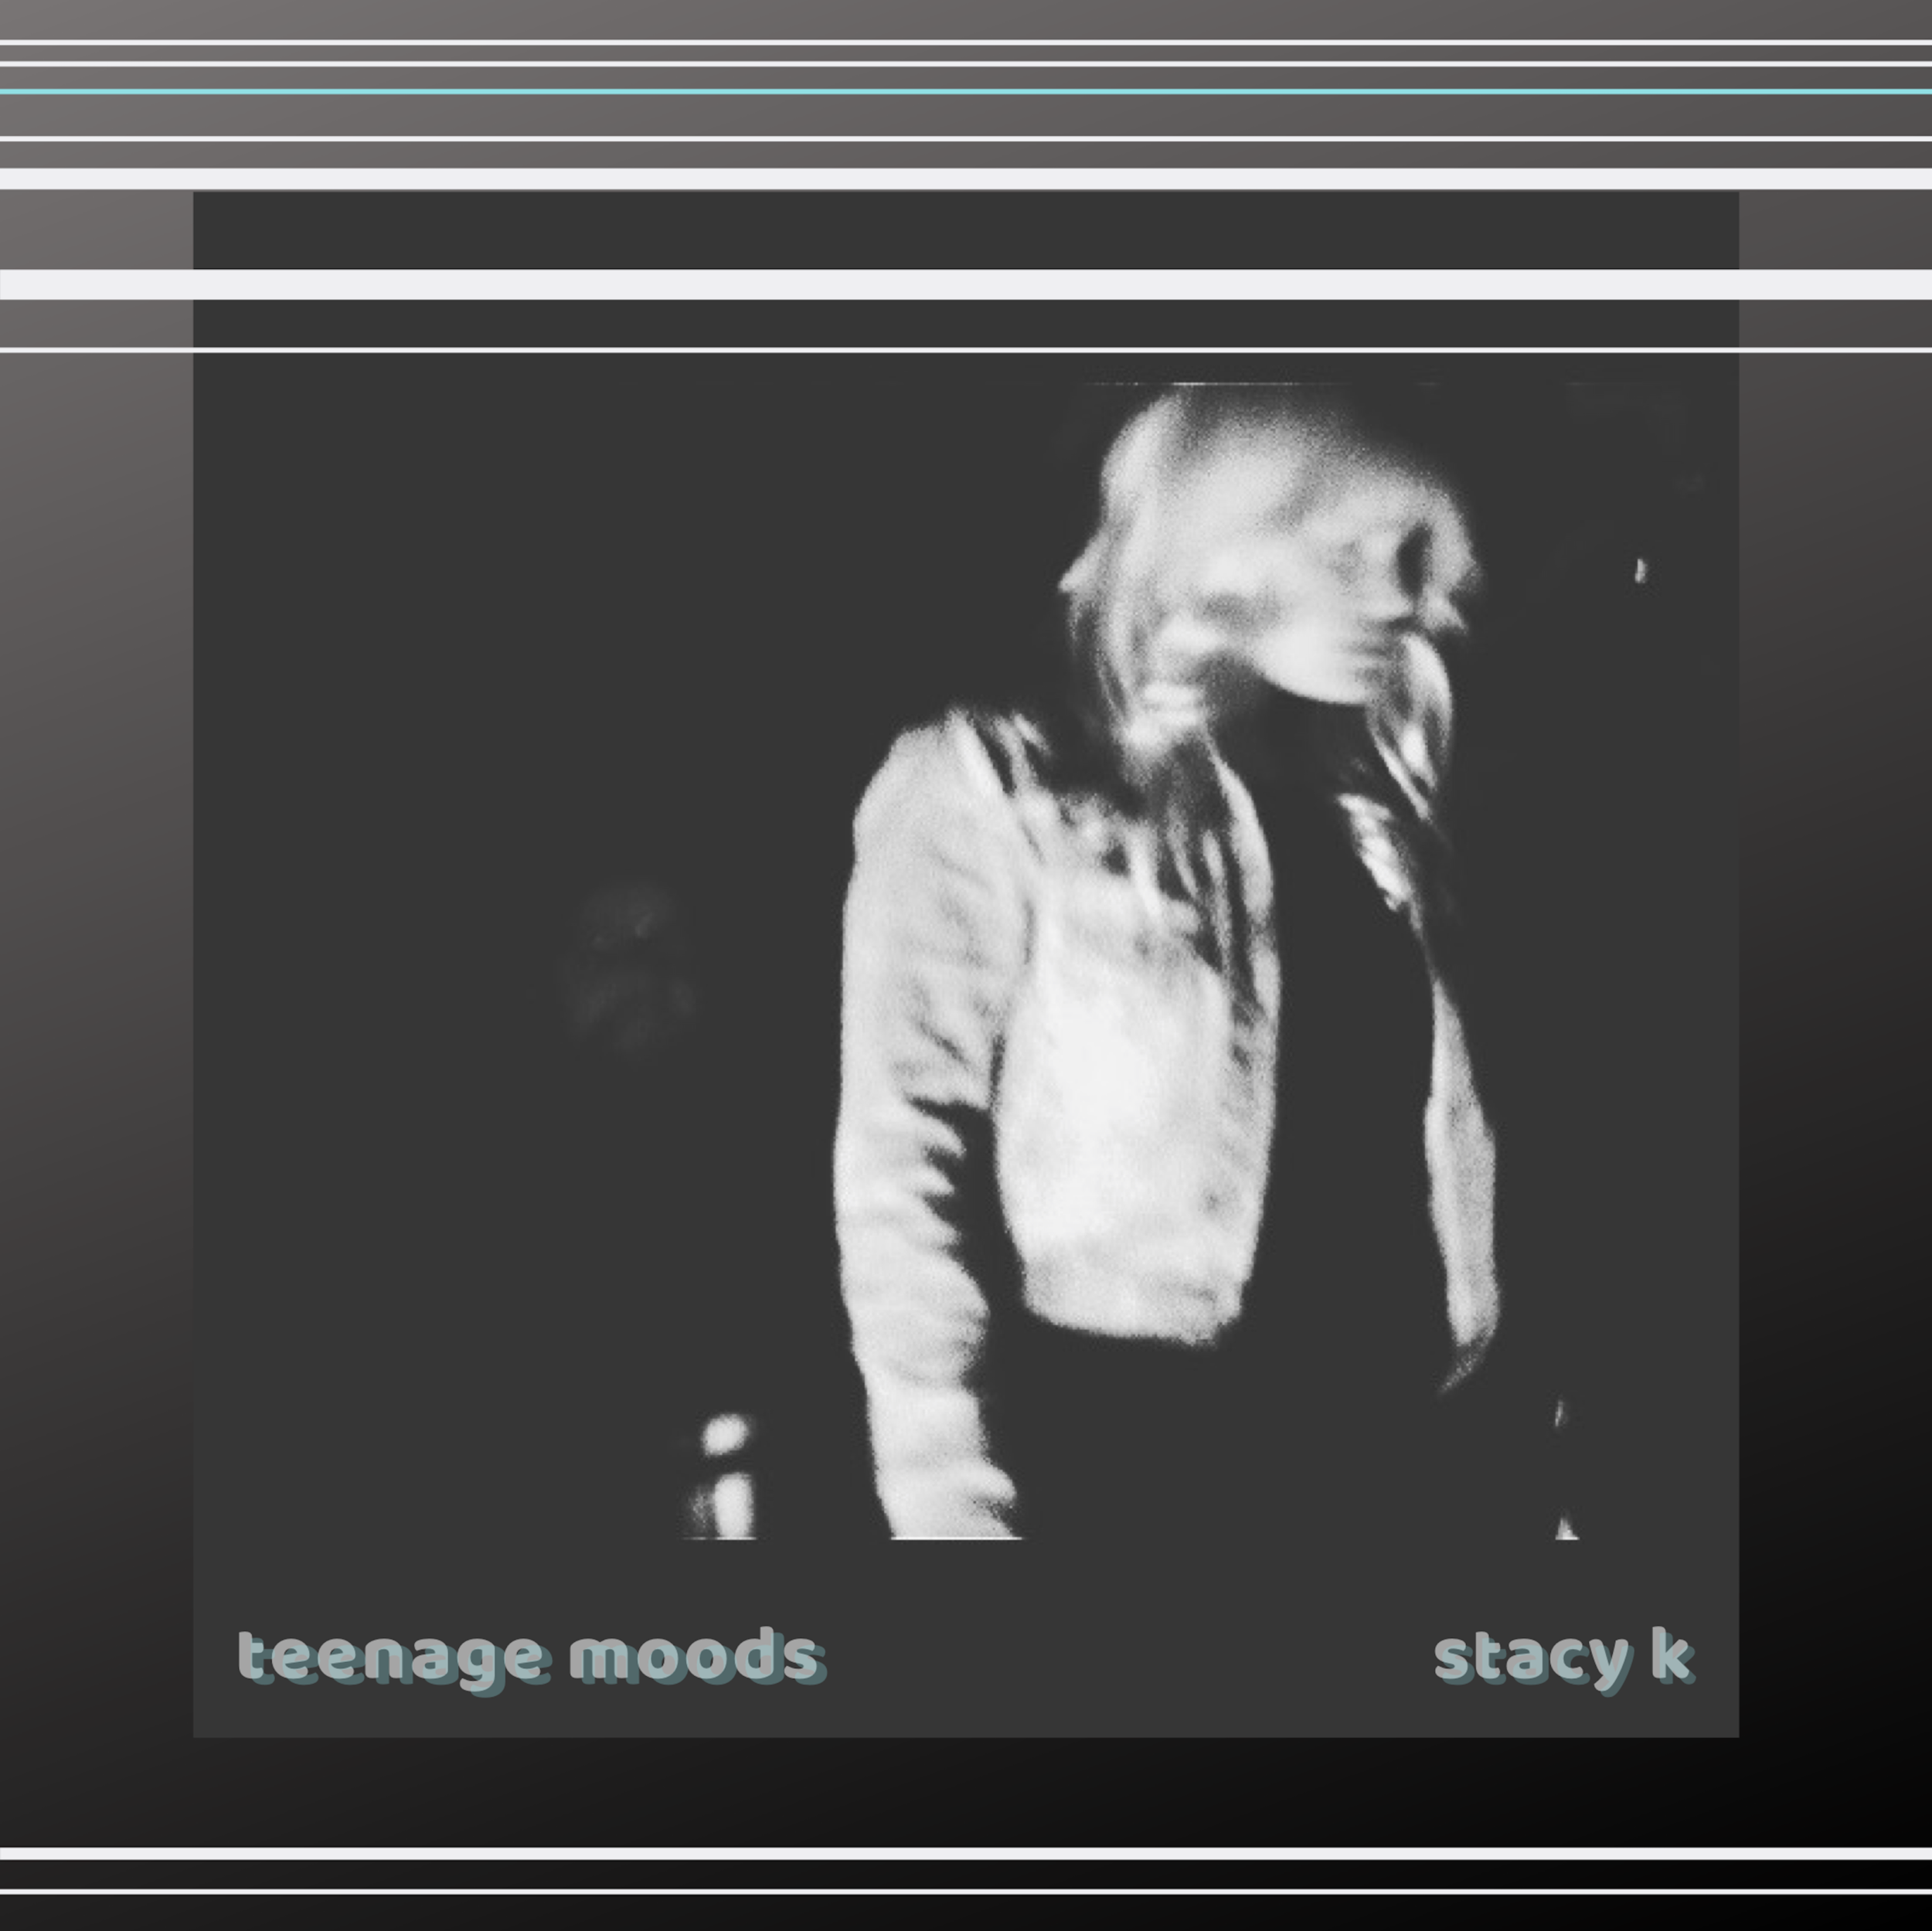 teenage moods cover art 2 copy.png